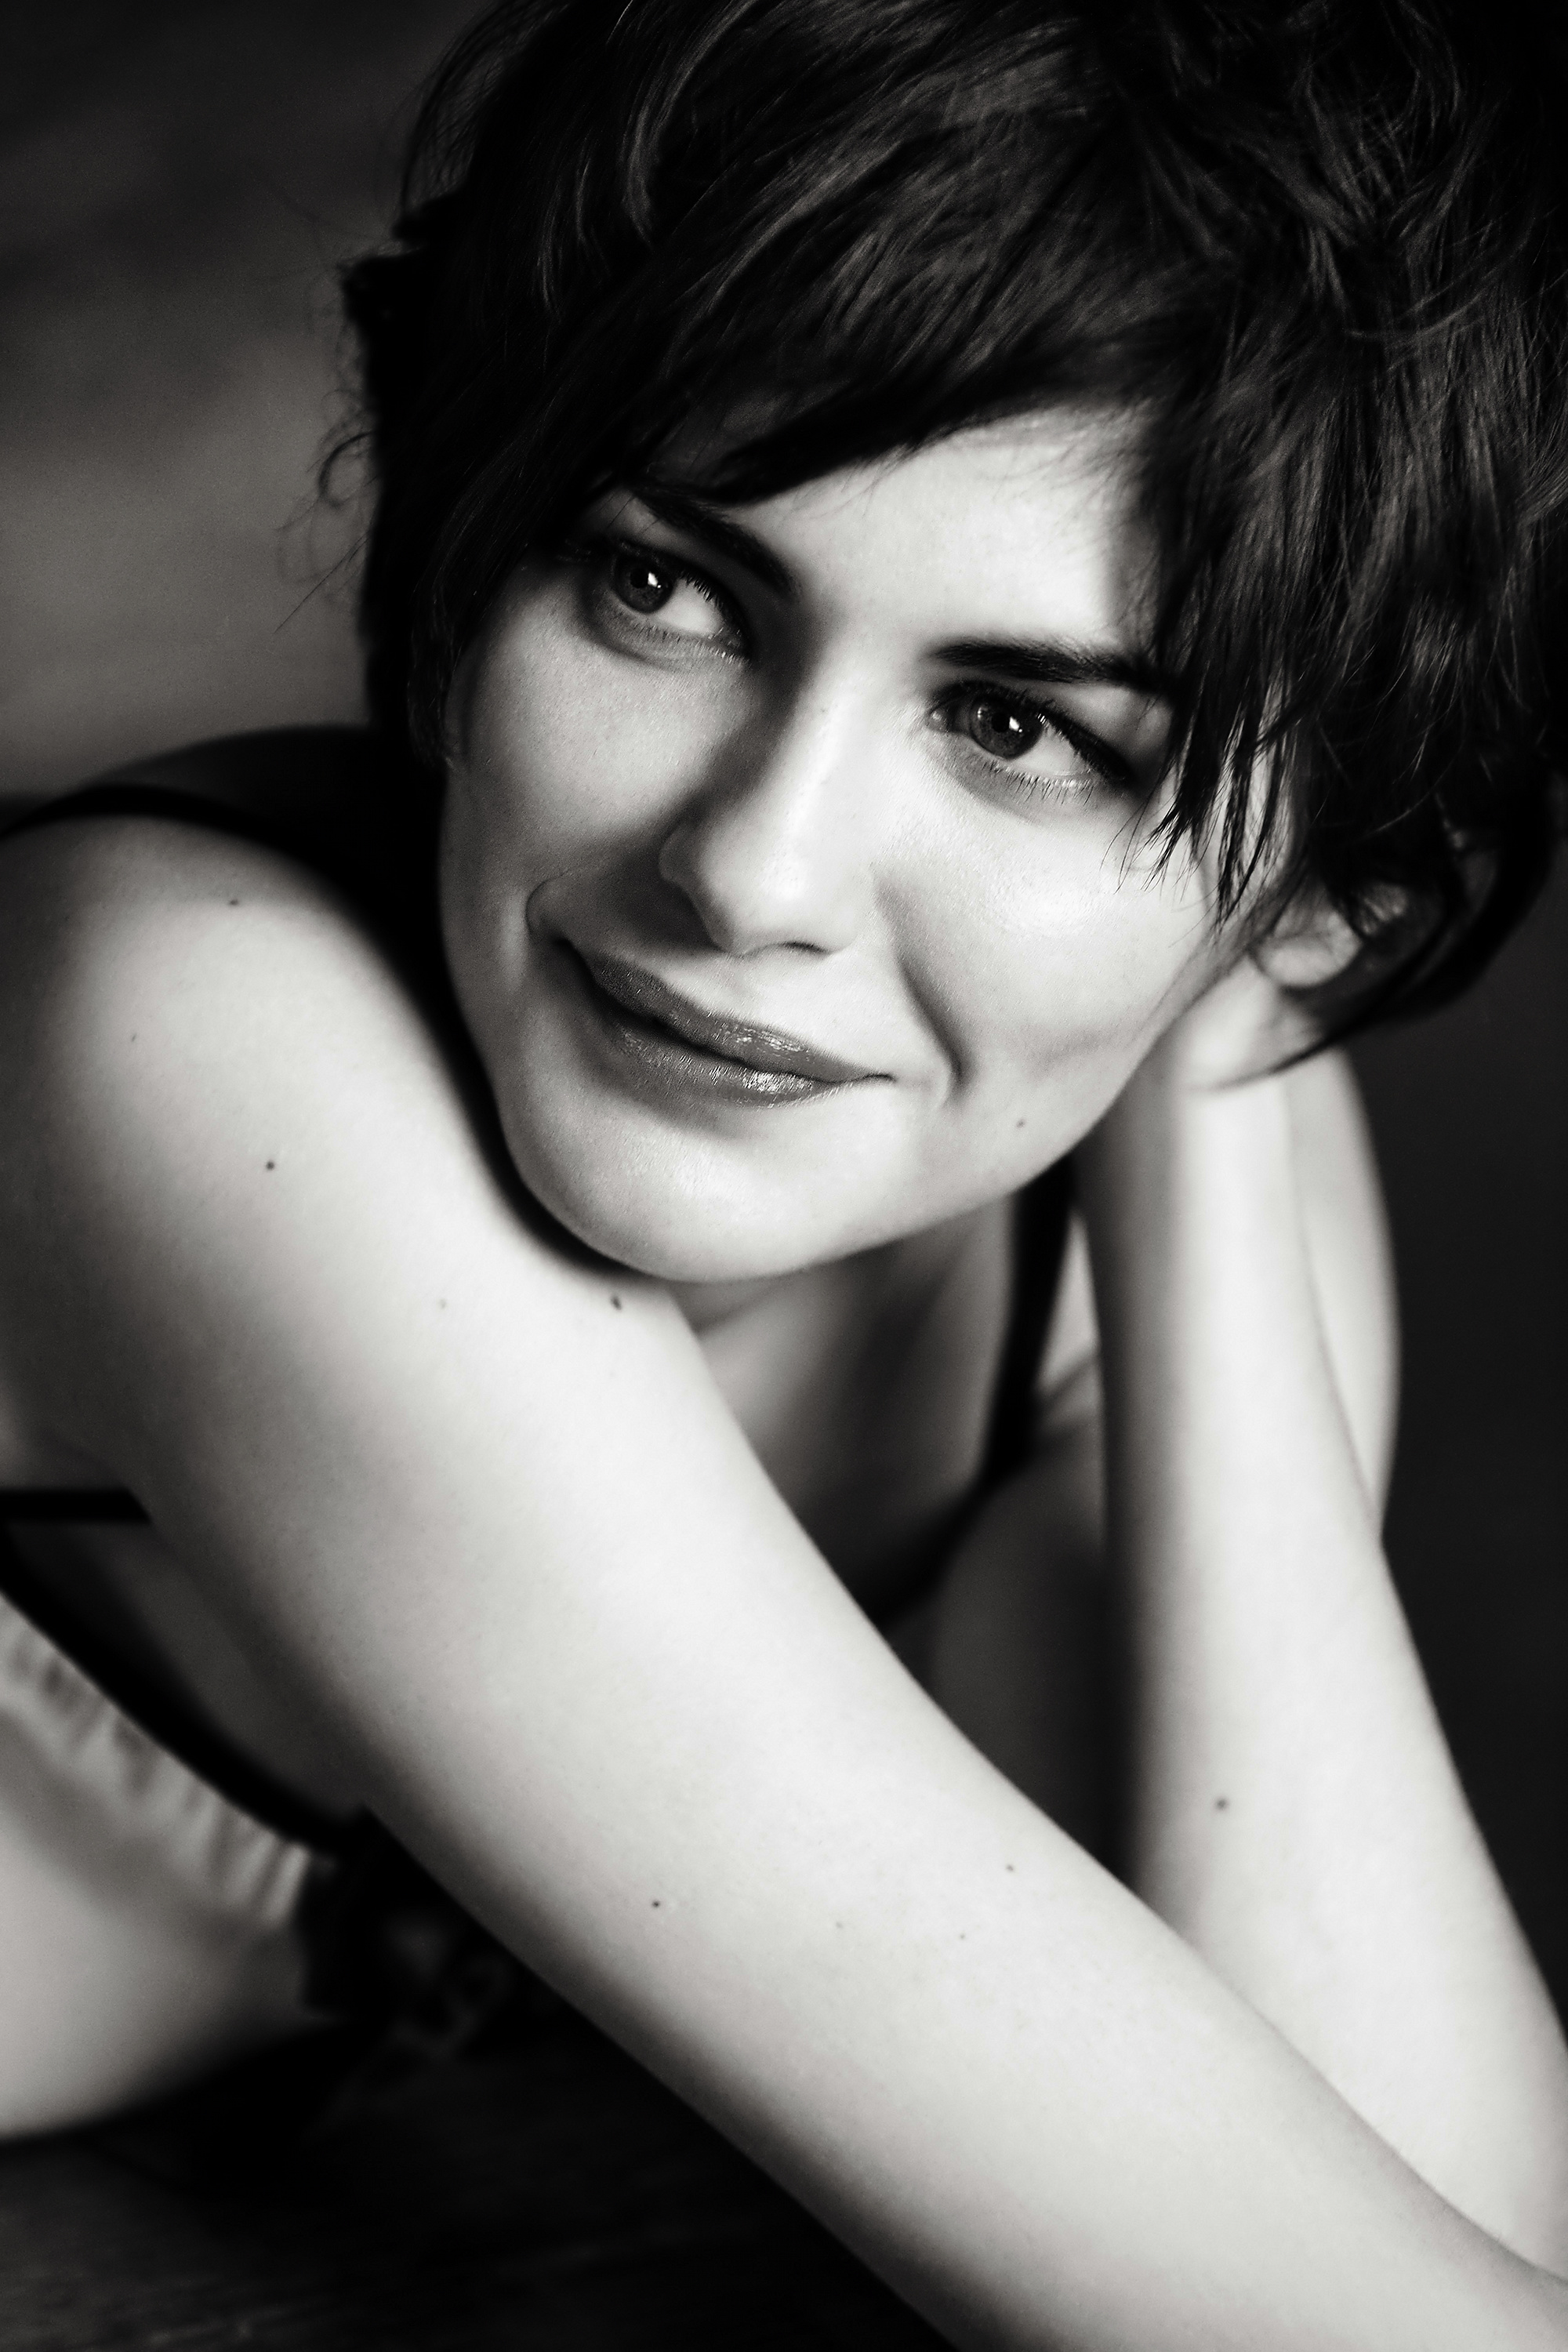 audrey tautou frenchaudrey tautou 2017, audrey tautou 2016, audrey tautou films, audrey tautou биография, audrey tautou amelie, audrey tautou style, audrey tautou wiki, audrey tautou tumblr, audrey tautou hors de prix, audrey tautou gif, audrey tautou фильмы, audrey tautou street style, audrey tautou young, audrey tautou la biographie, audrey tautou interview, audrey tautou wiki fr, audrey tautou pronunciation, audrey tautou wdw, audrey tautou filme, audrey tautou french